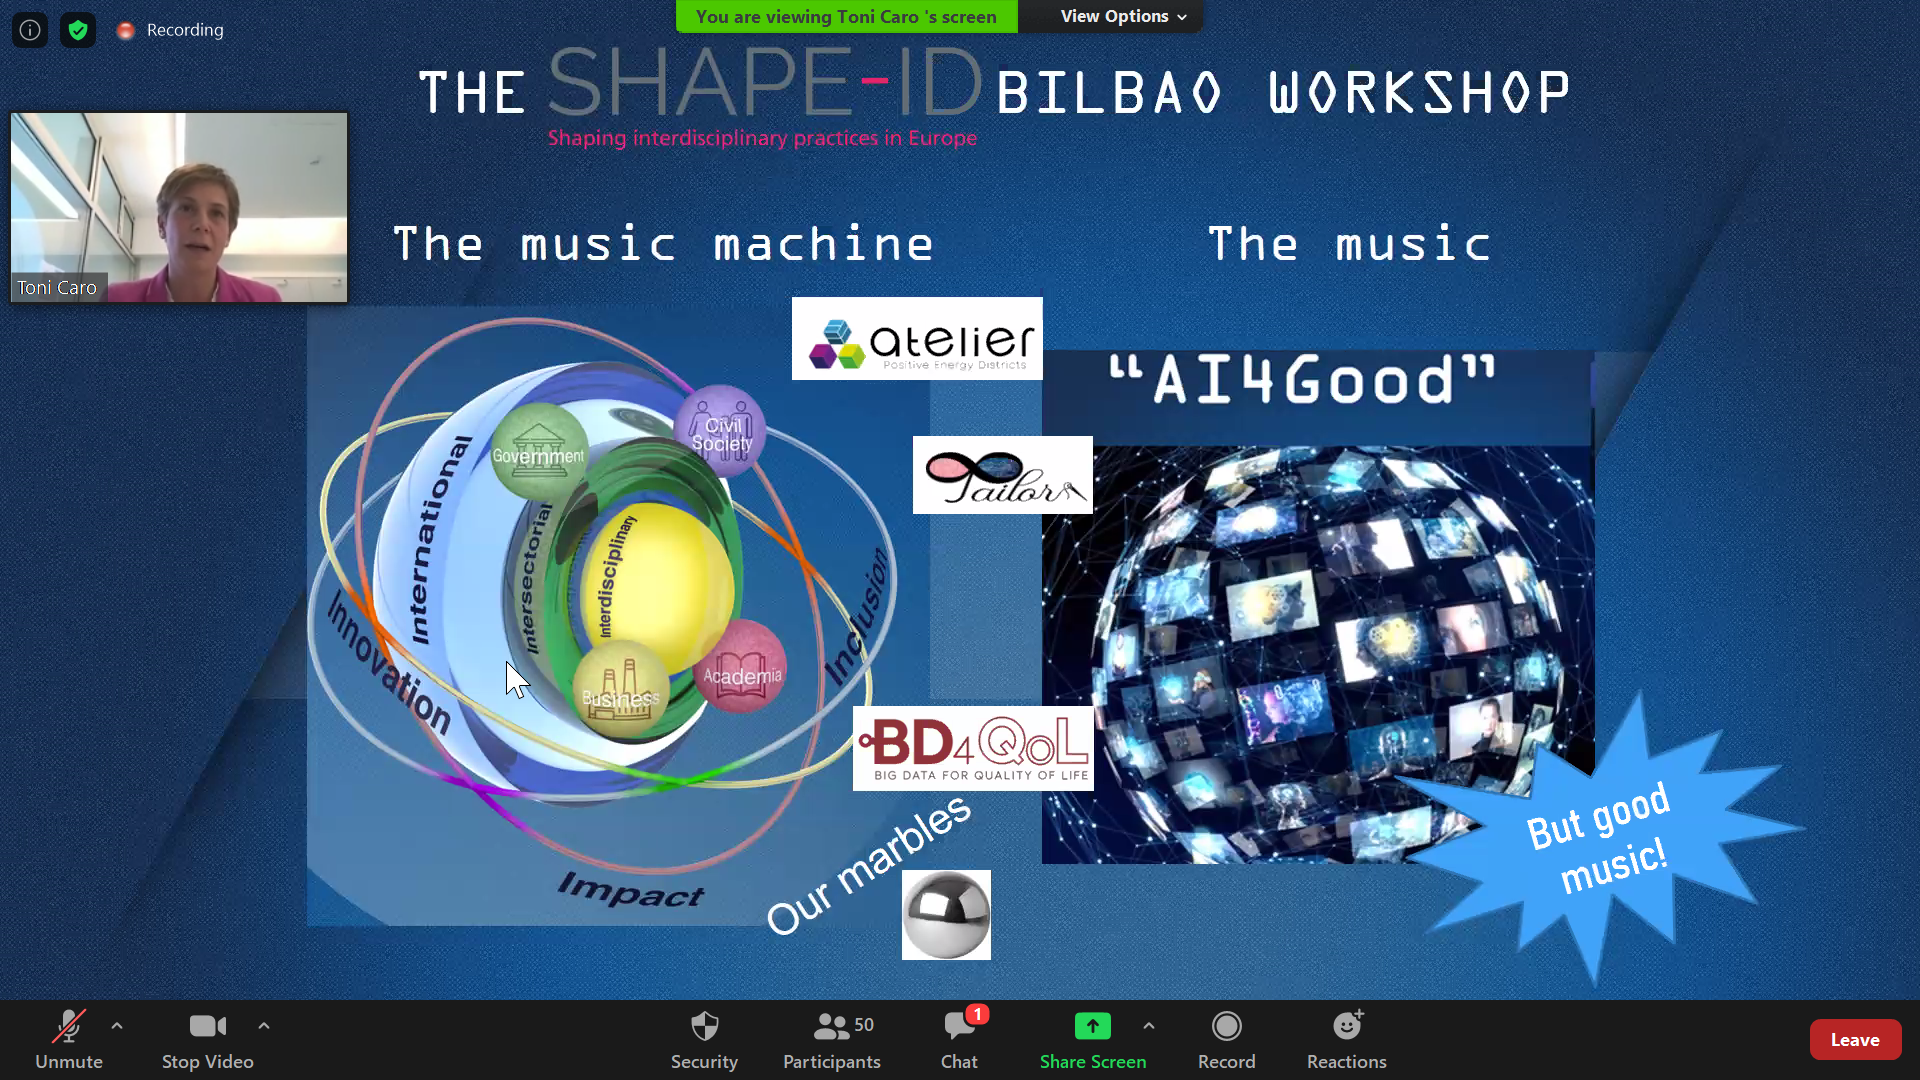 SHAPE-ID And University Of Deusto Host Workshop On Artificial Intelligence For Social Good